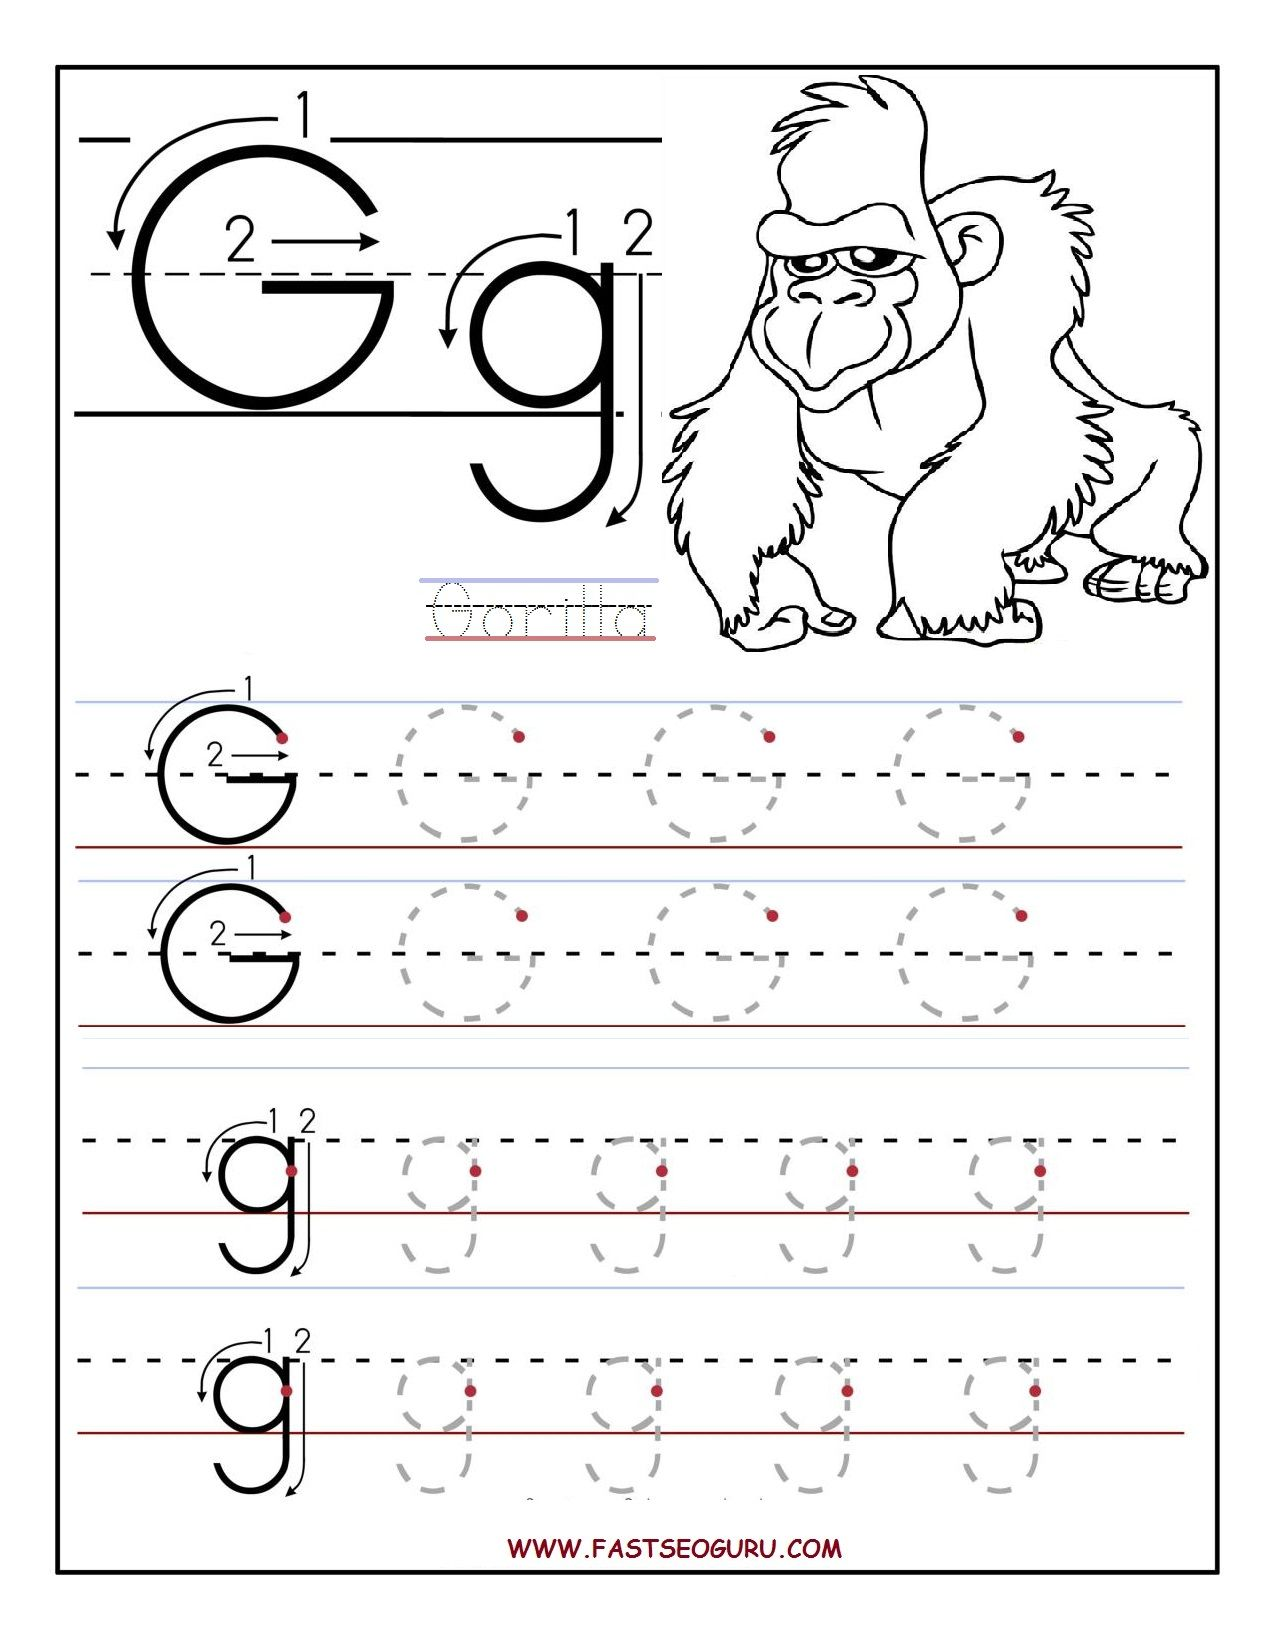 Image Result For Printable Traceable Letters For Children